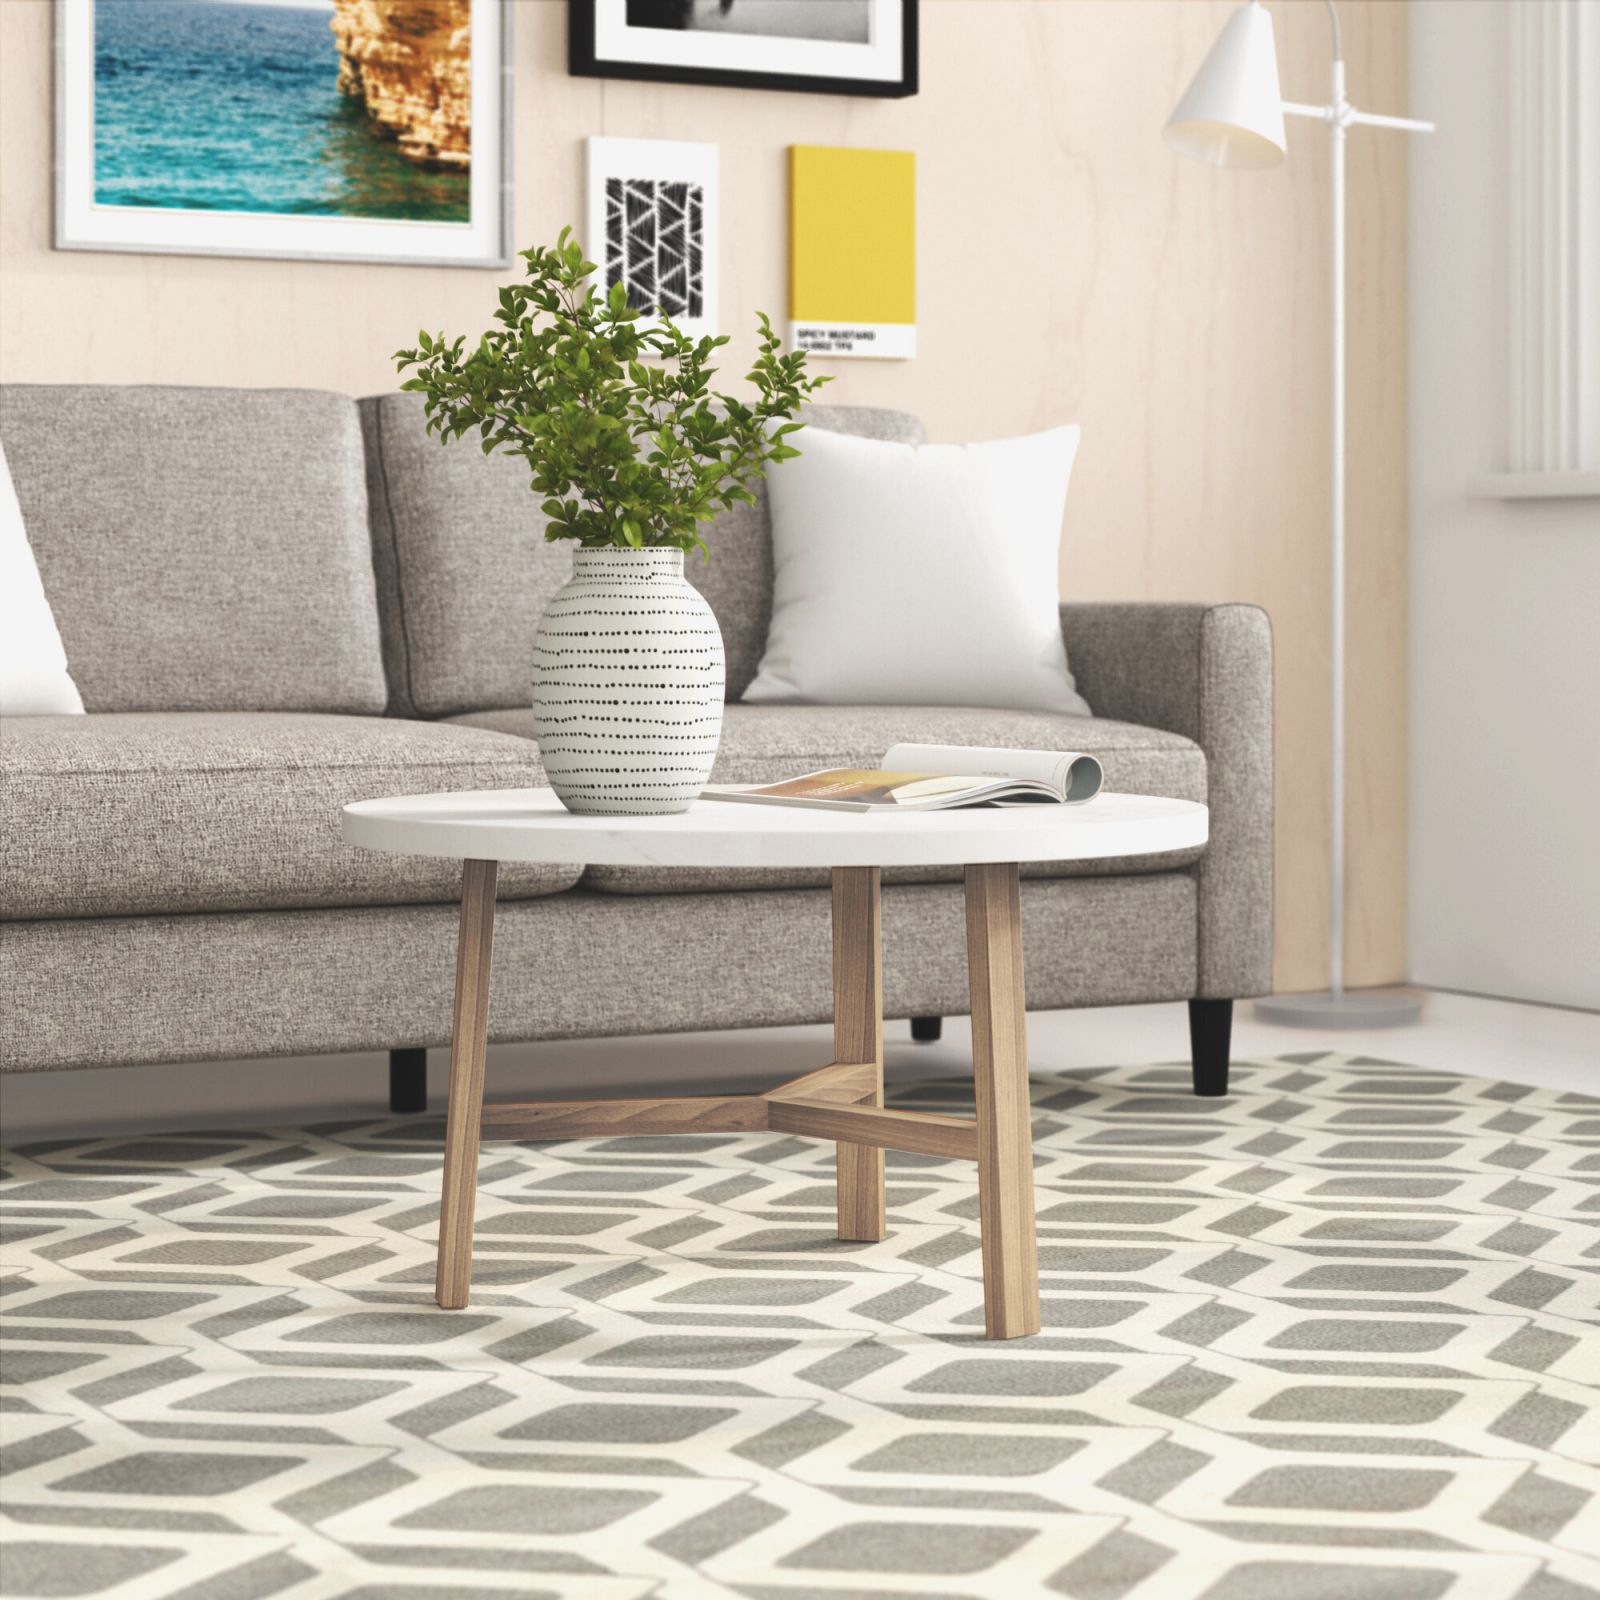 3-Piece Mid Century Modern Accent Table Set throughout 10+ Unique Gallery Accent Tables For Living Room